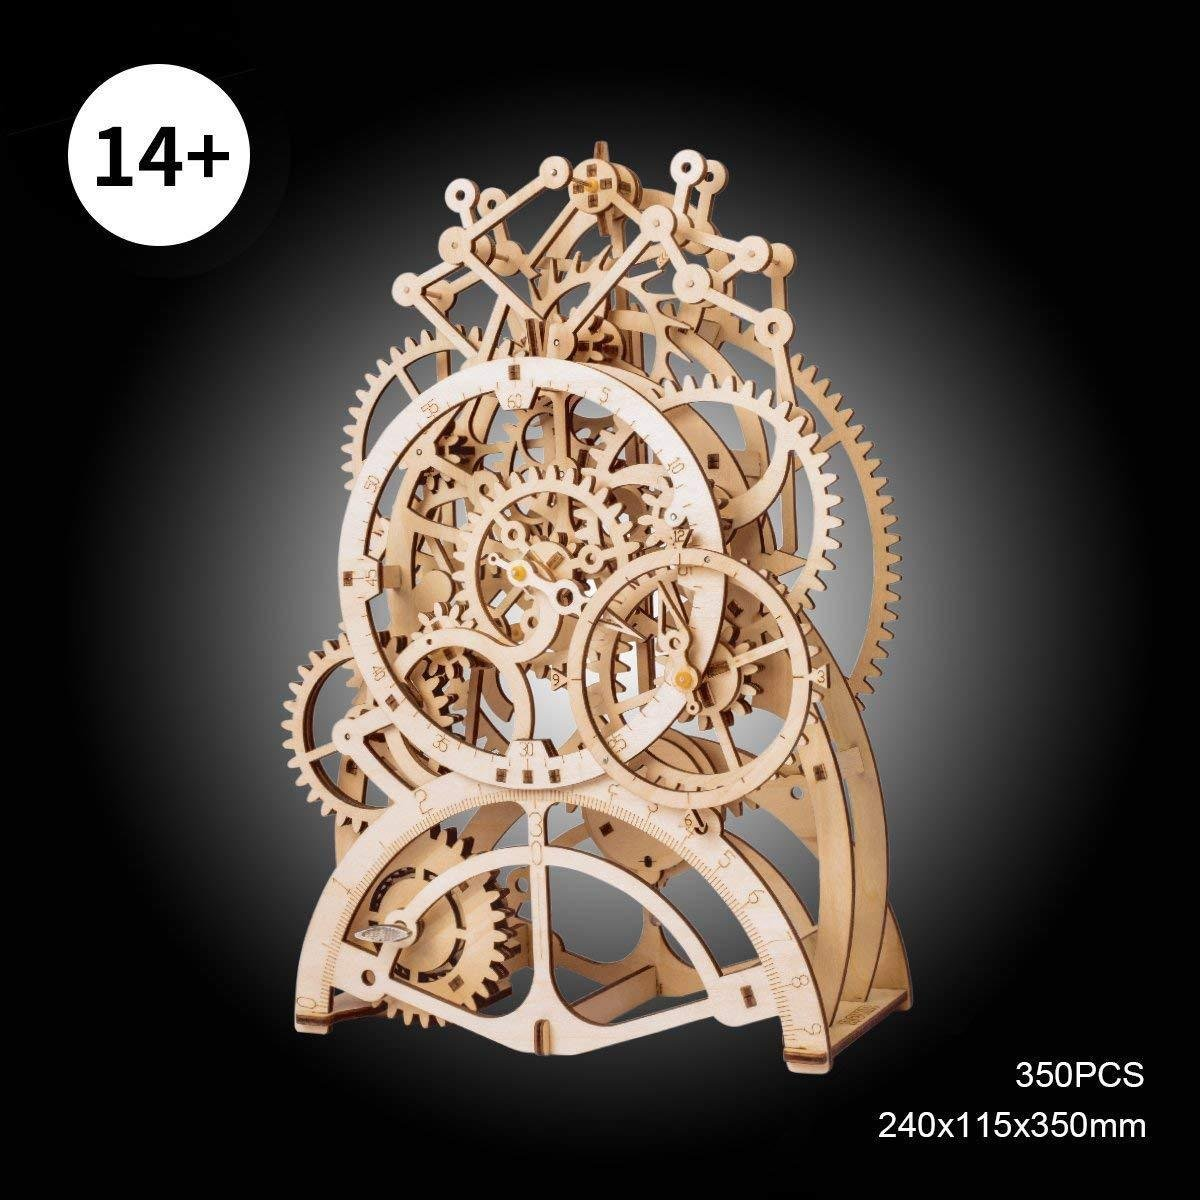 ROKR 3D Wooden Perpetual Calendar Puzzle,Mechanical Gears Toy Building Set,Brain Teaser Games,Engineering Toys,Family Wooden Craft KIT Supplies-Great Birthday Boyfriend Father Adult